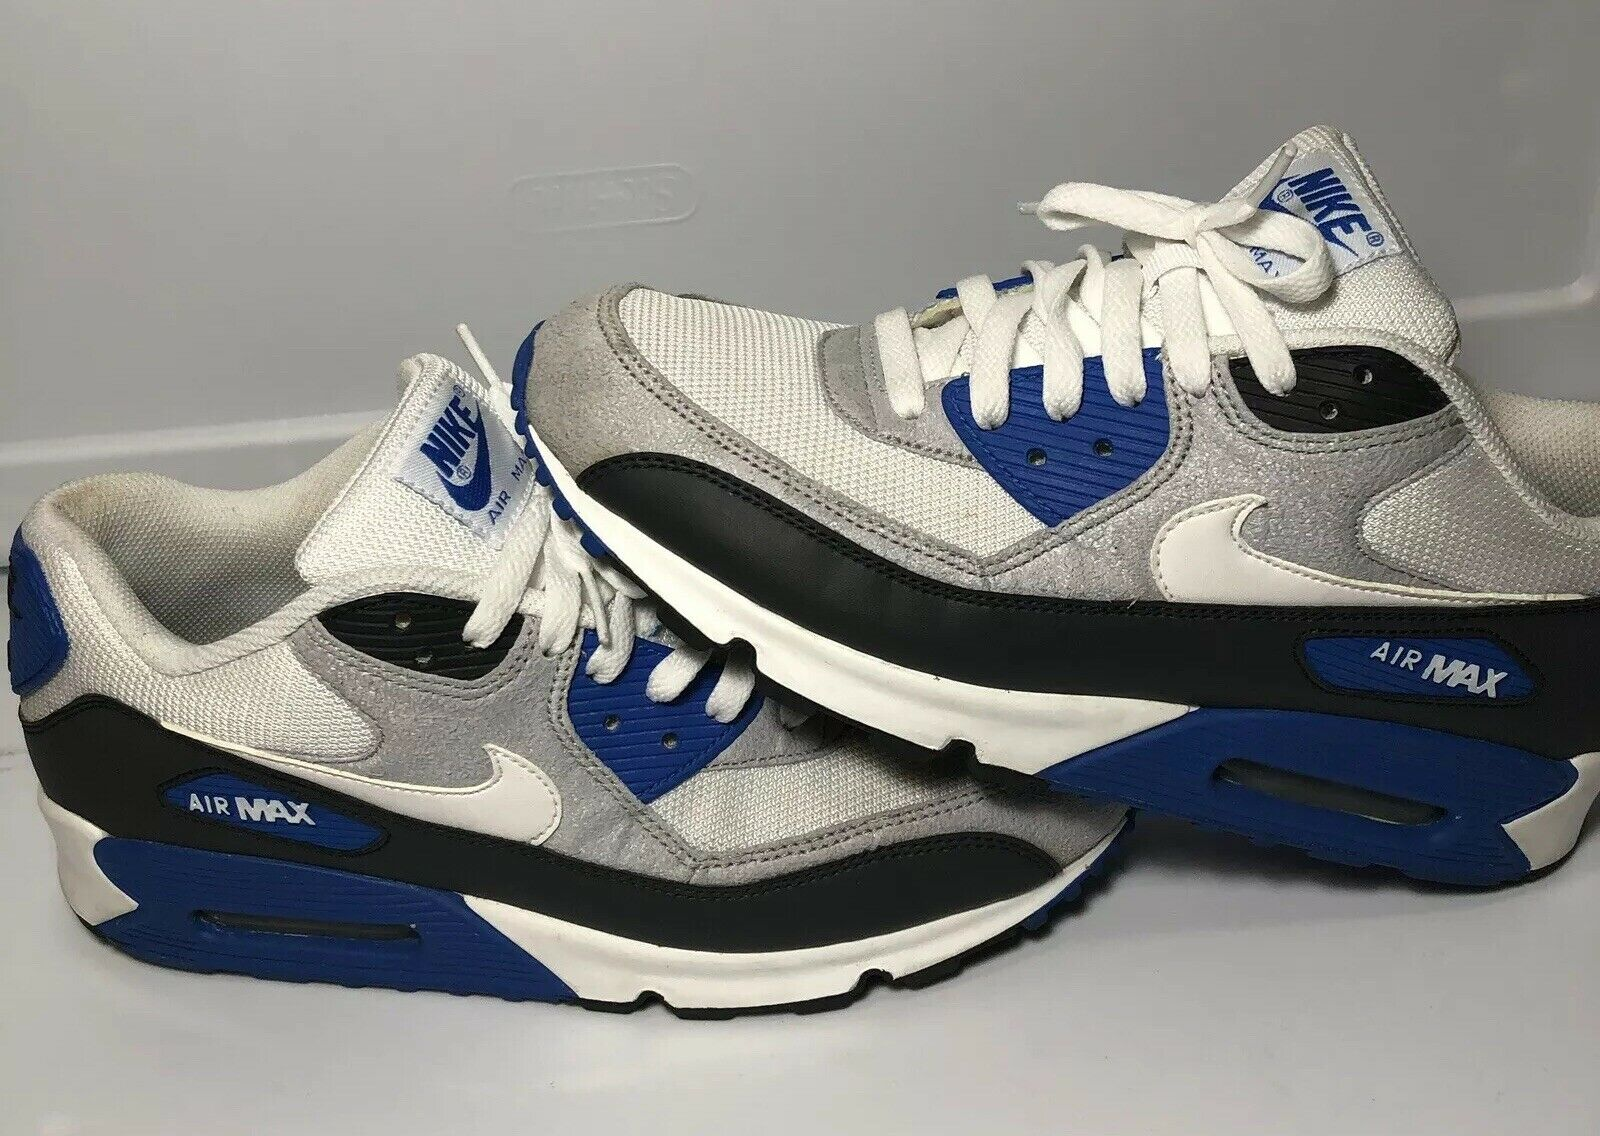 5d8ebf4516ee Nike Air Max 90 white anthracite obsidian soar bluee bluee bluee 325018-050  US Mens